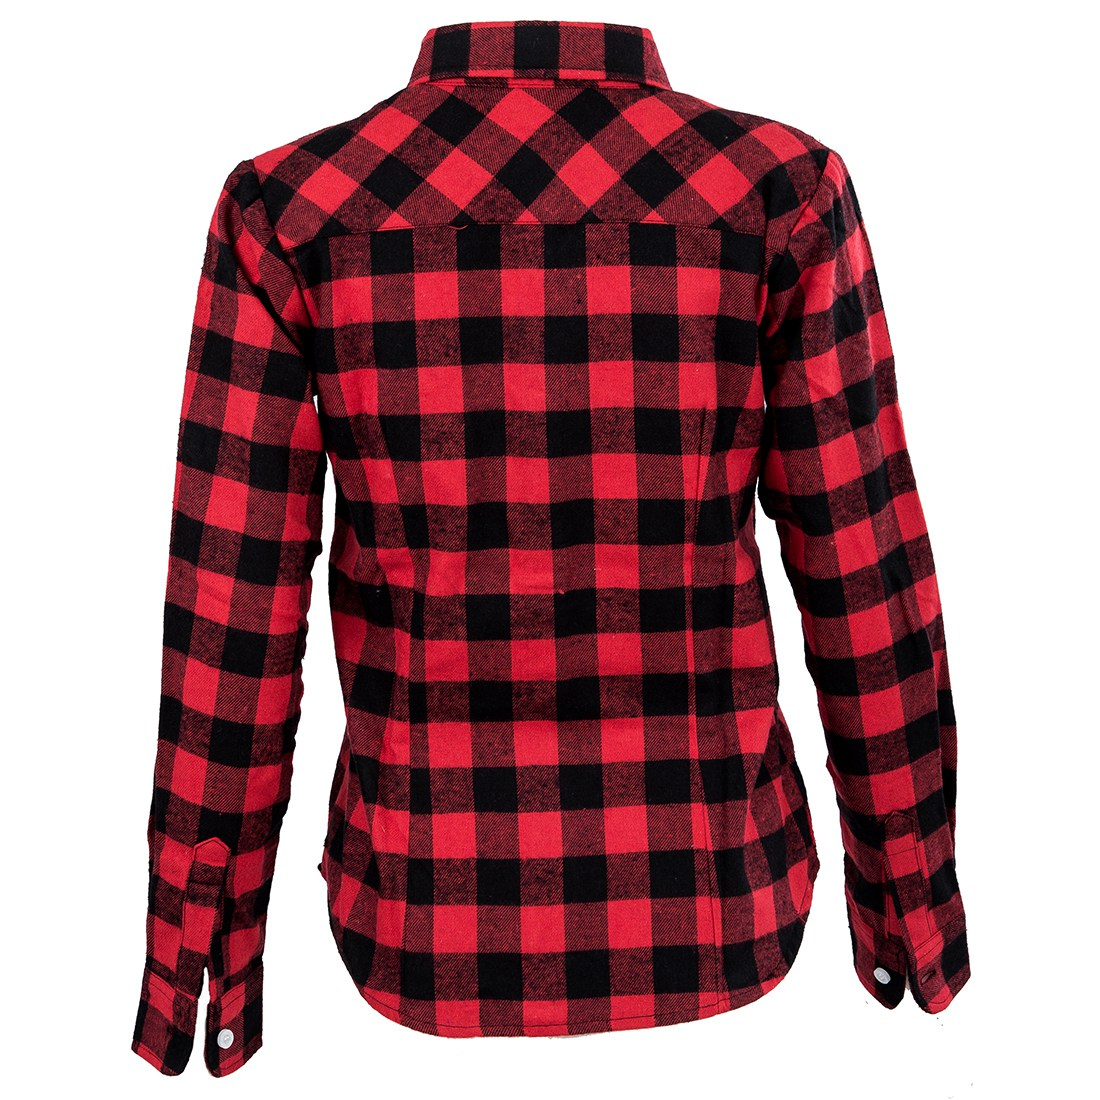 Womens shirt flannel shirts tops blouse red black m w1u1 Womens red plaid shirts blouses